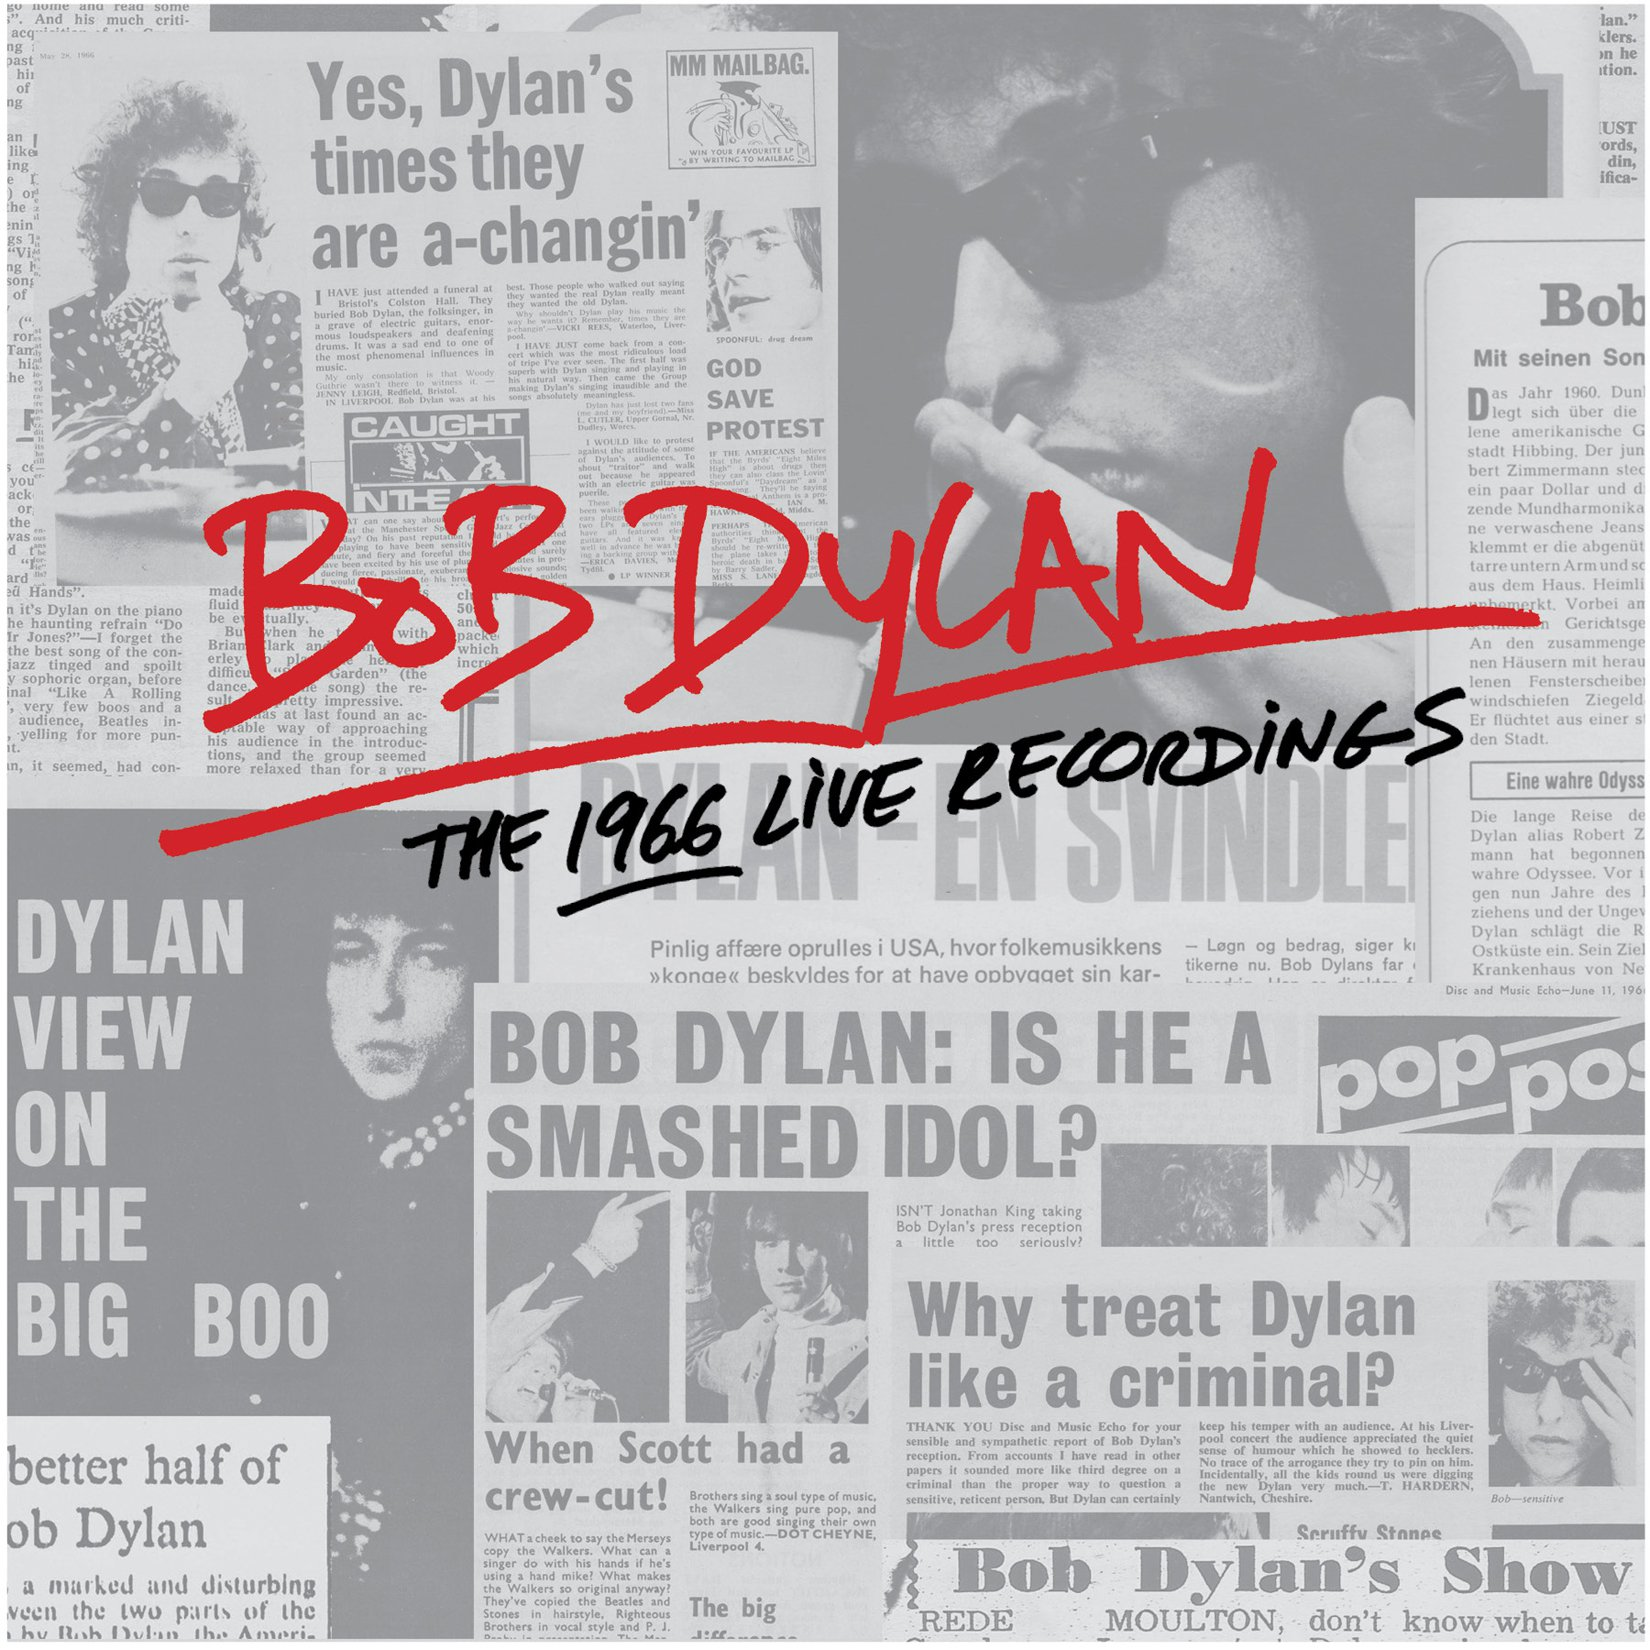 Bob Dylan announces massive 36 disc box set of 1966 live recordings